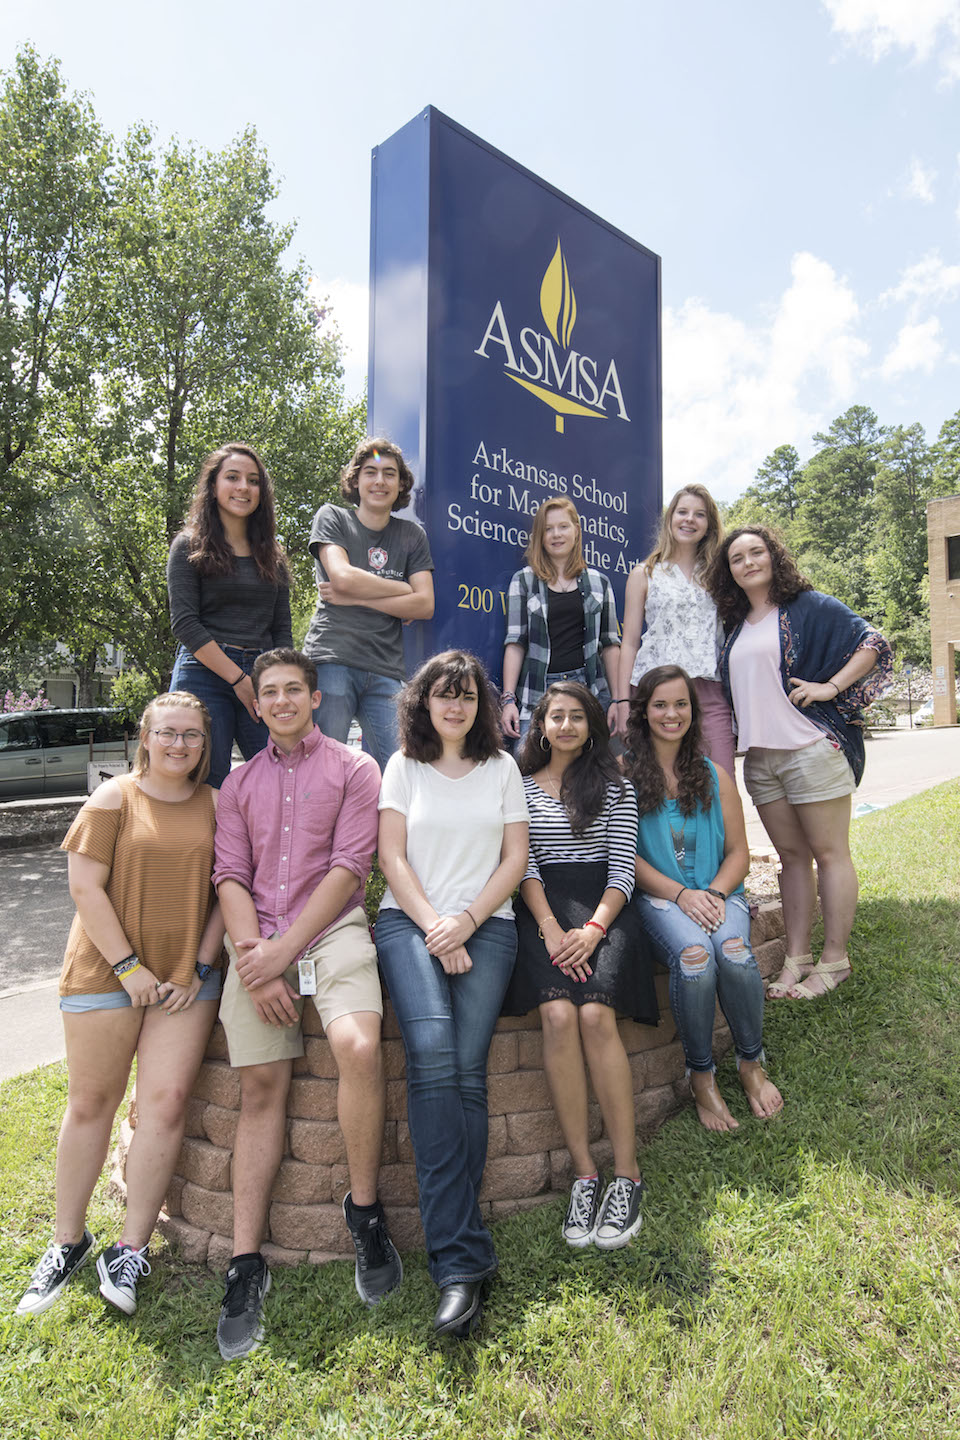 (Standing from left) Katherine Evans, John Ostermueller, Cameron Rhoden, Elizabeth Solleder and Hollie Hagler. (Seated from left) Lily Ann Easley, Sarkis Kalajyan, Nadia Teske, Riddhi Modi and Alyssa Easterling.